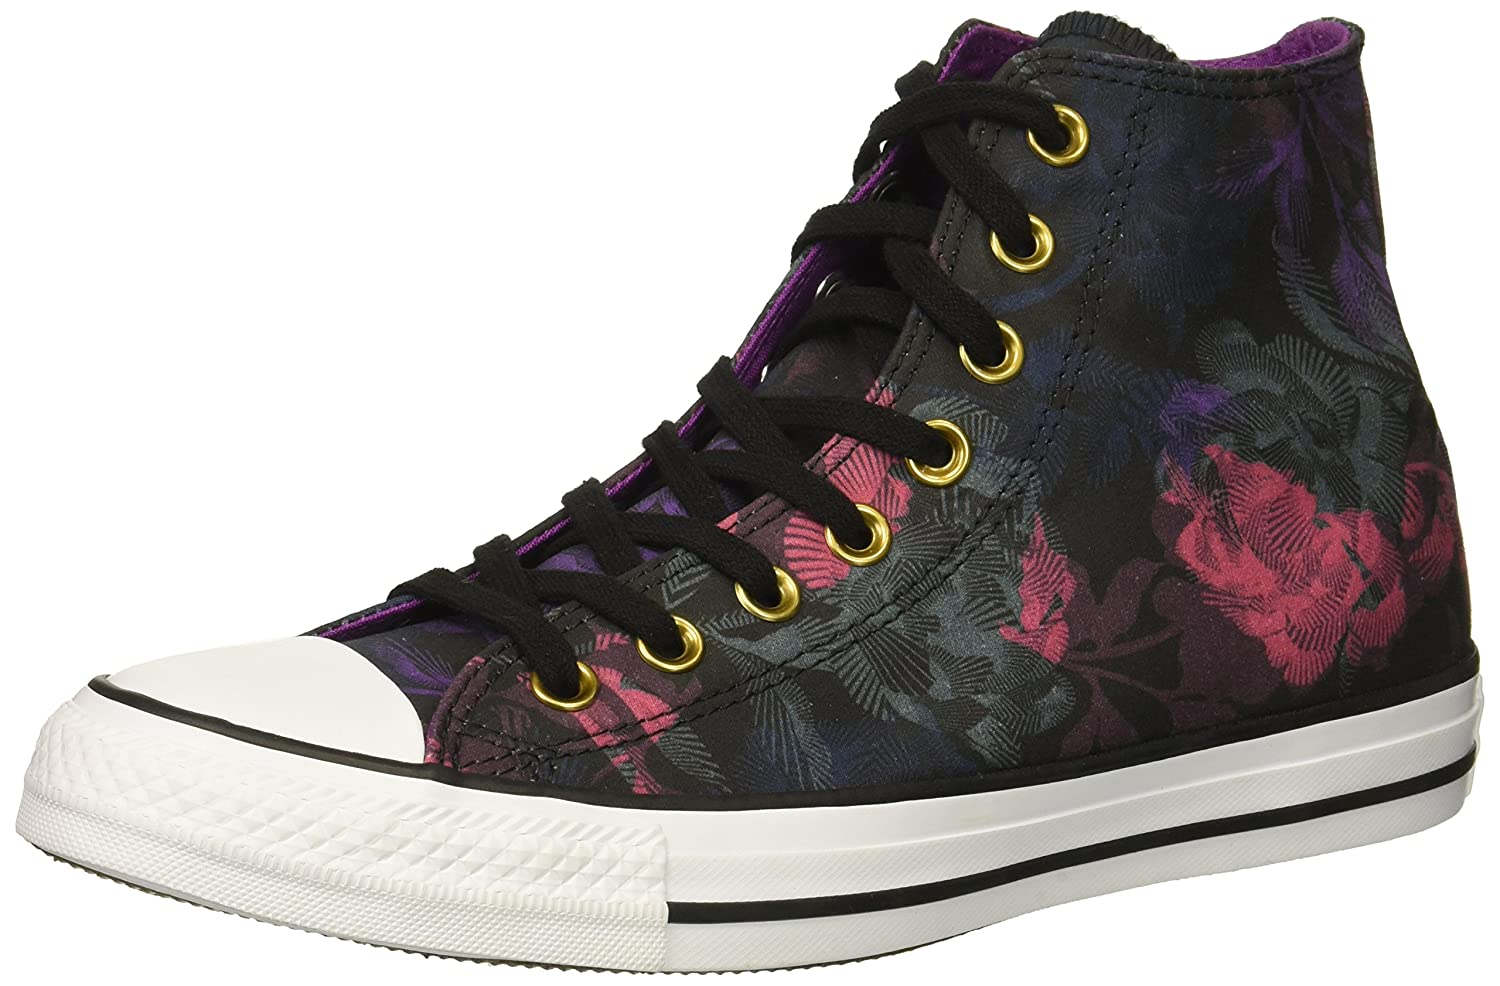 Converse Women's Chuck Taylor All Star Floral Print High Top Sneaker B07CR9JB3J 5.5 B(M) US|Black/Pink Pop/White